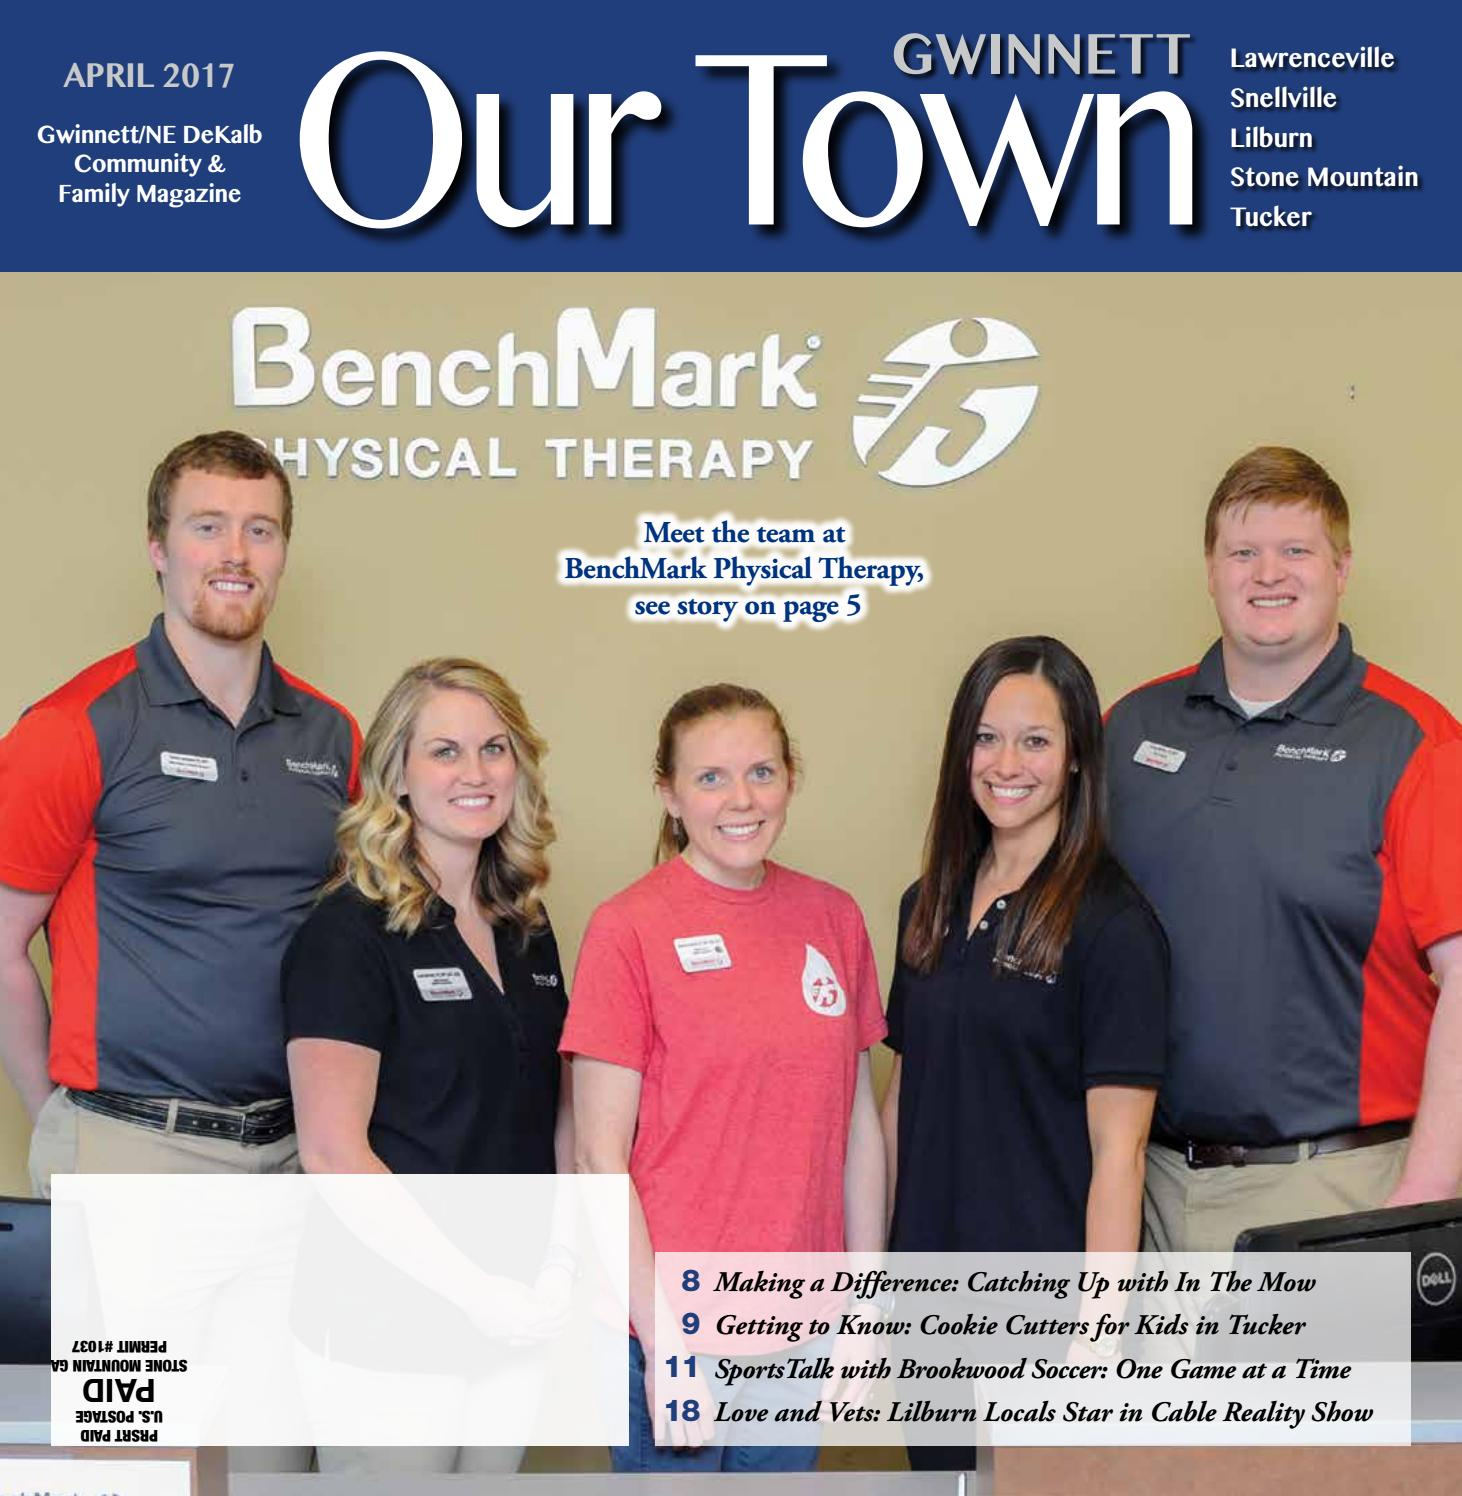 Beach communities physical therapy - April 2017 Our Town Gwinnett Ne Dekalb Monthly Magazine By Our Town Gwinnett Magazine Issuu